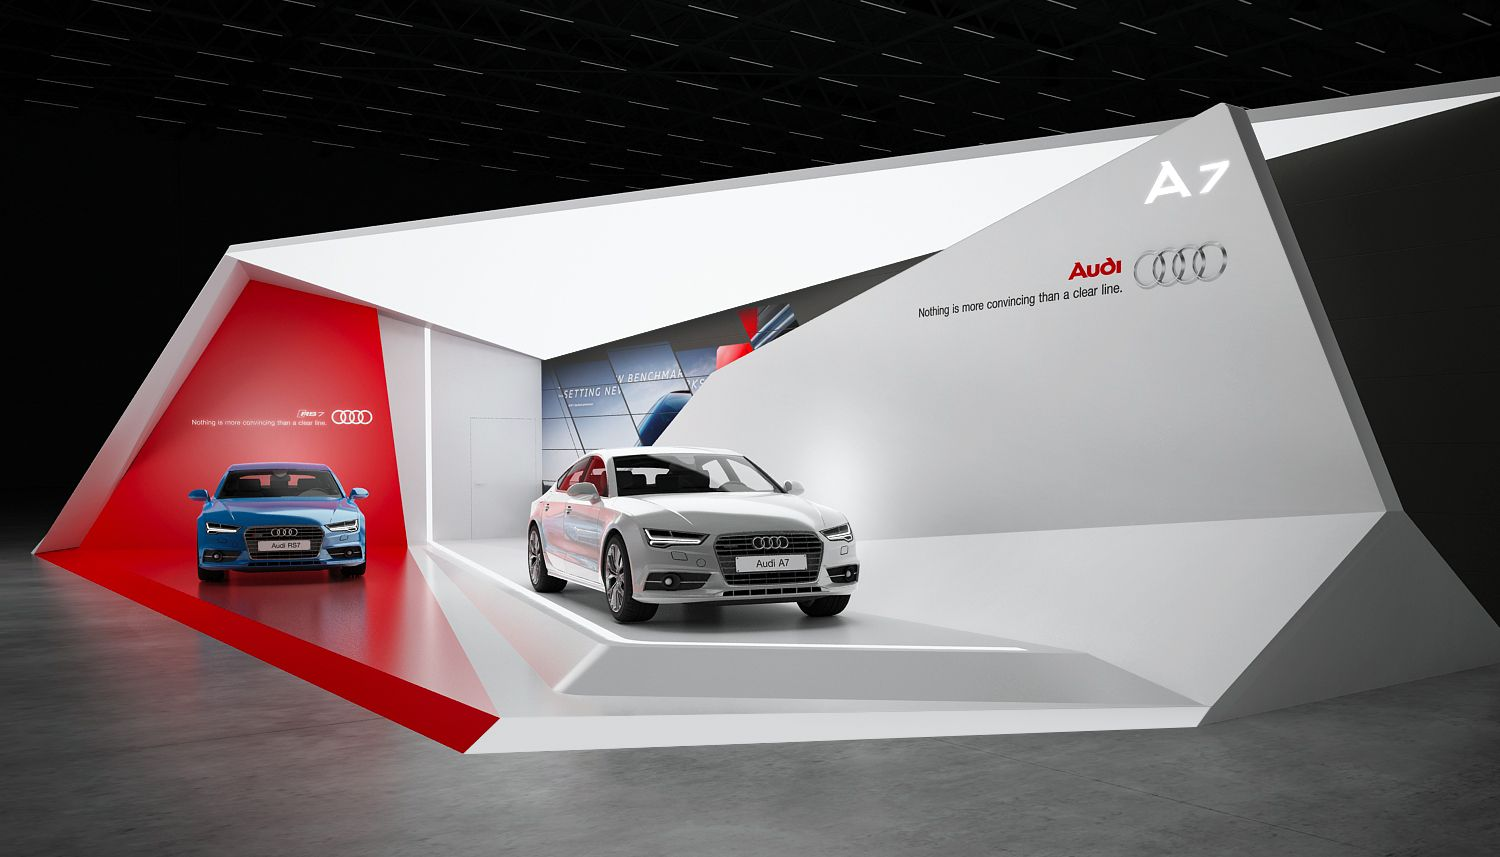 Audi a7 exhibition stand design for Expo stand